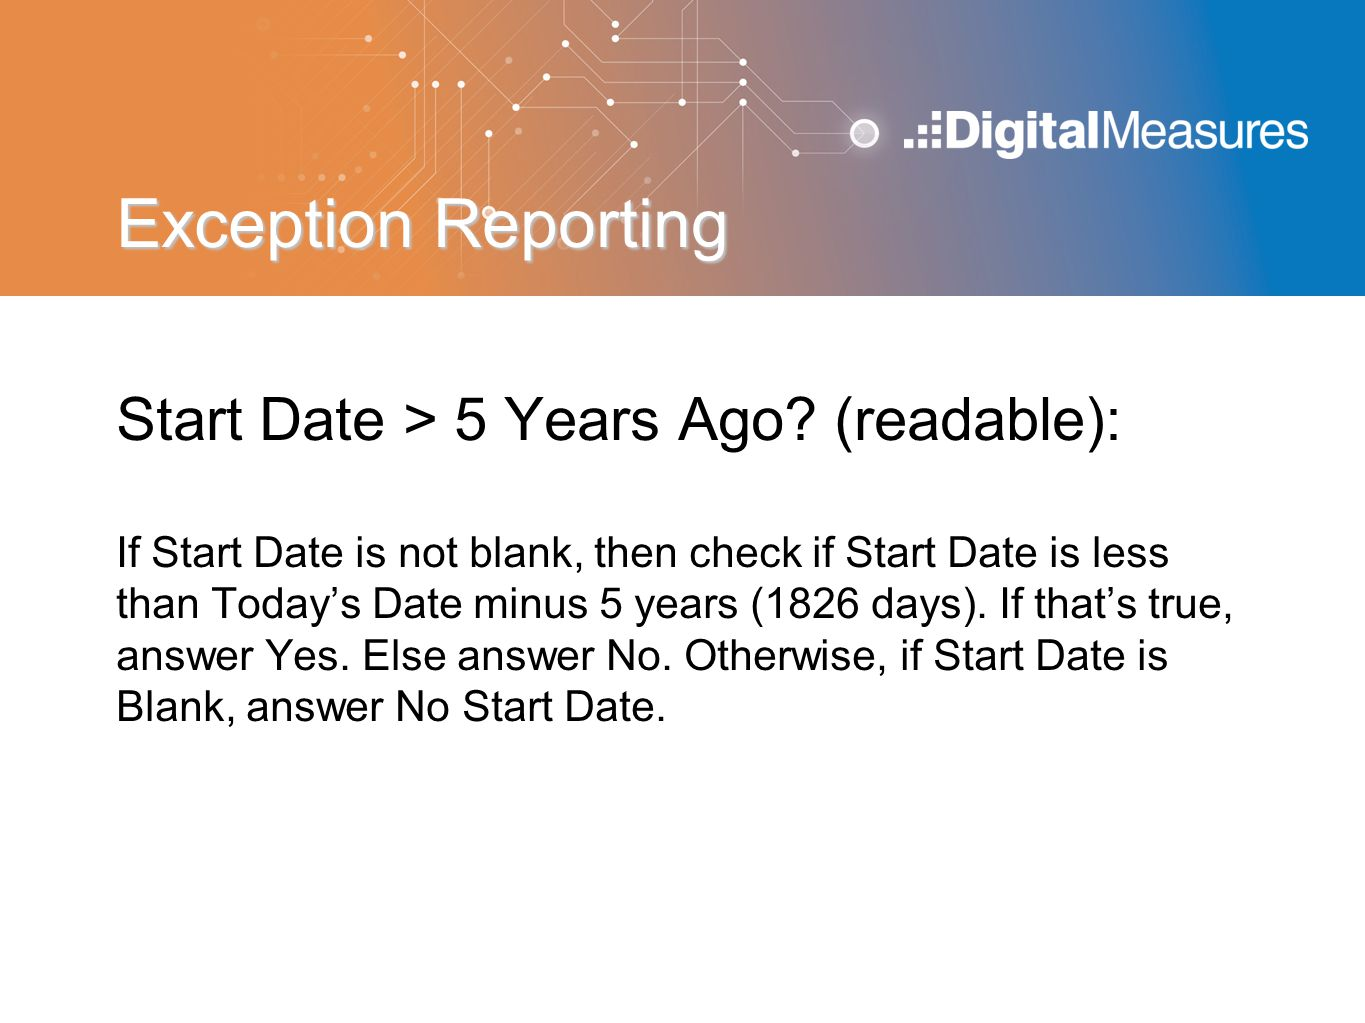 Start Date > 5 Years Ago? (readable): If Start Date is not blank, then check if Start Date is less than Today's Date minus 5 years (1826 days). If tha